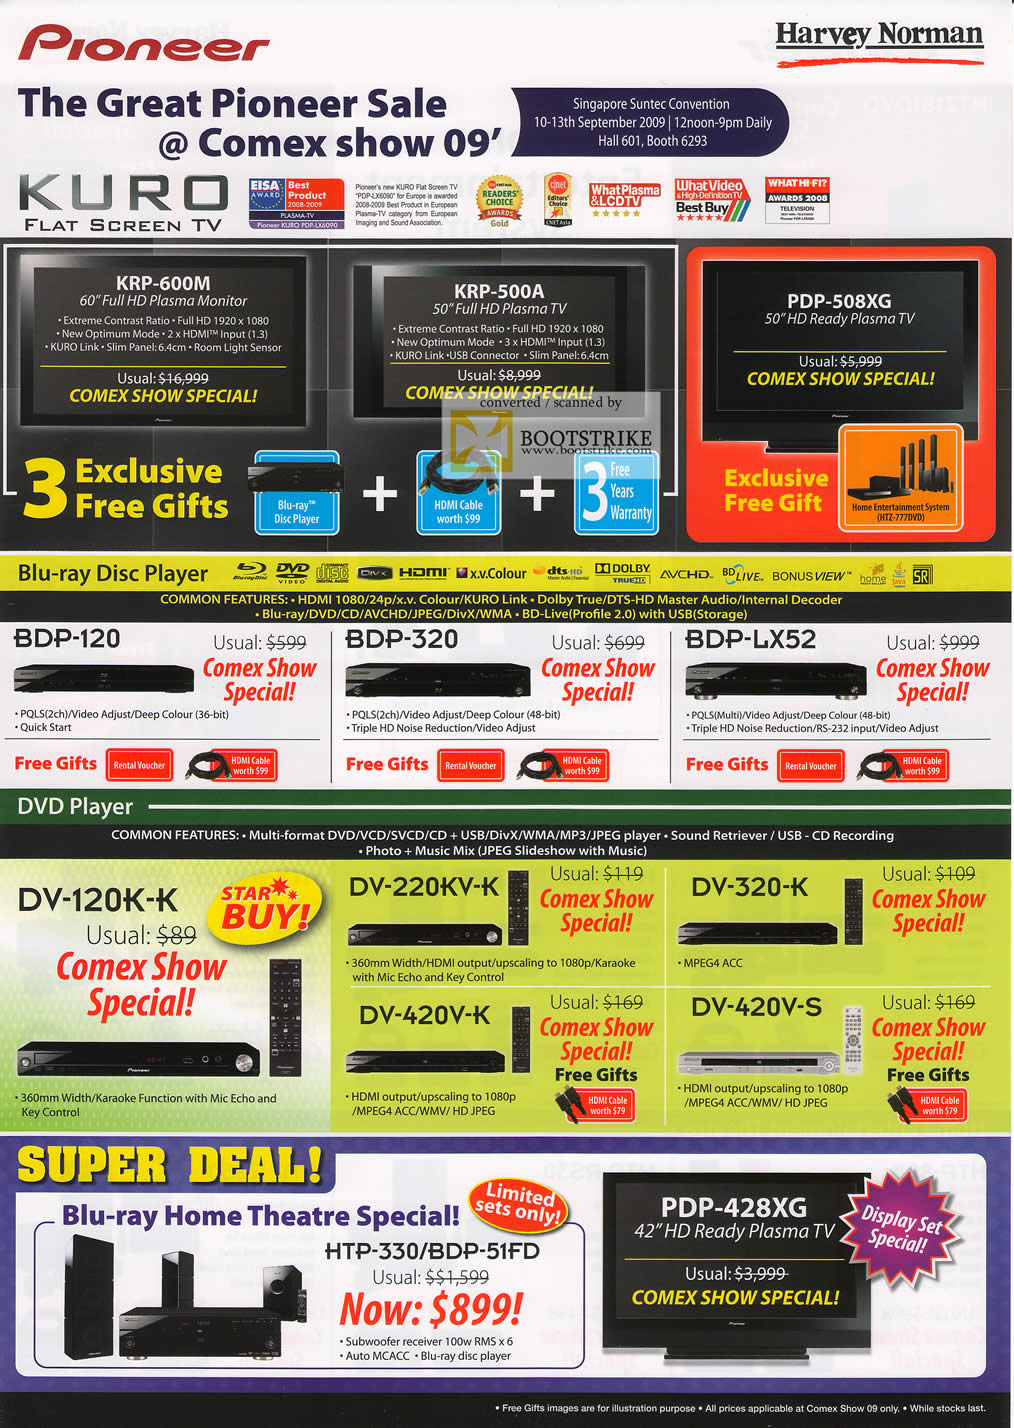 Comex 2009 price list image brochure of Pioneer Kuro Plasma TV Blu Ray DVD Player Home Theatre Harvey Norman